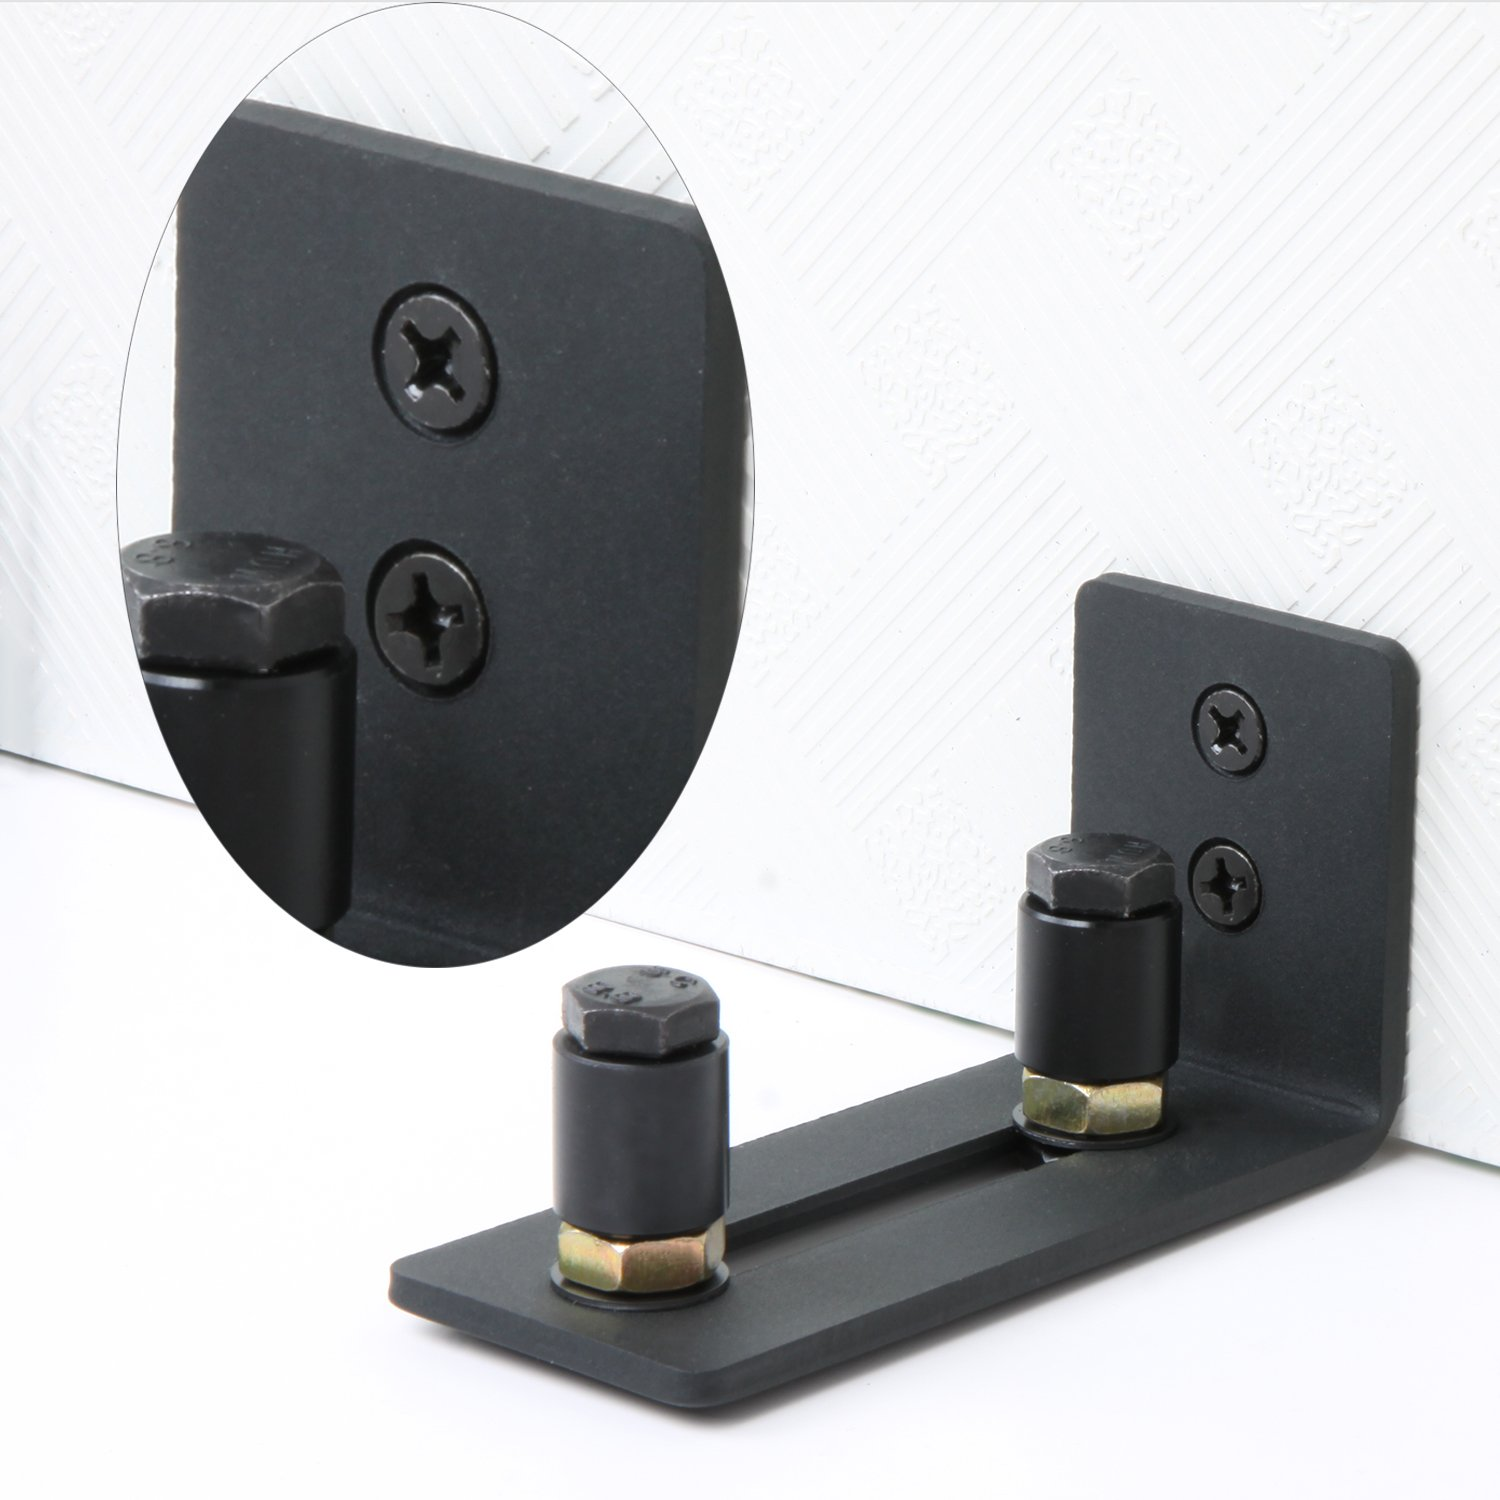 Stay Roller Guide Sliding Barn Door Bottom Guide Adjustable Floor Guide Wall Mounted Hardware with Black Power Coat-Flush to Floor (2 Pack) by NIUBEE (Image #6)